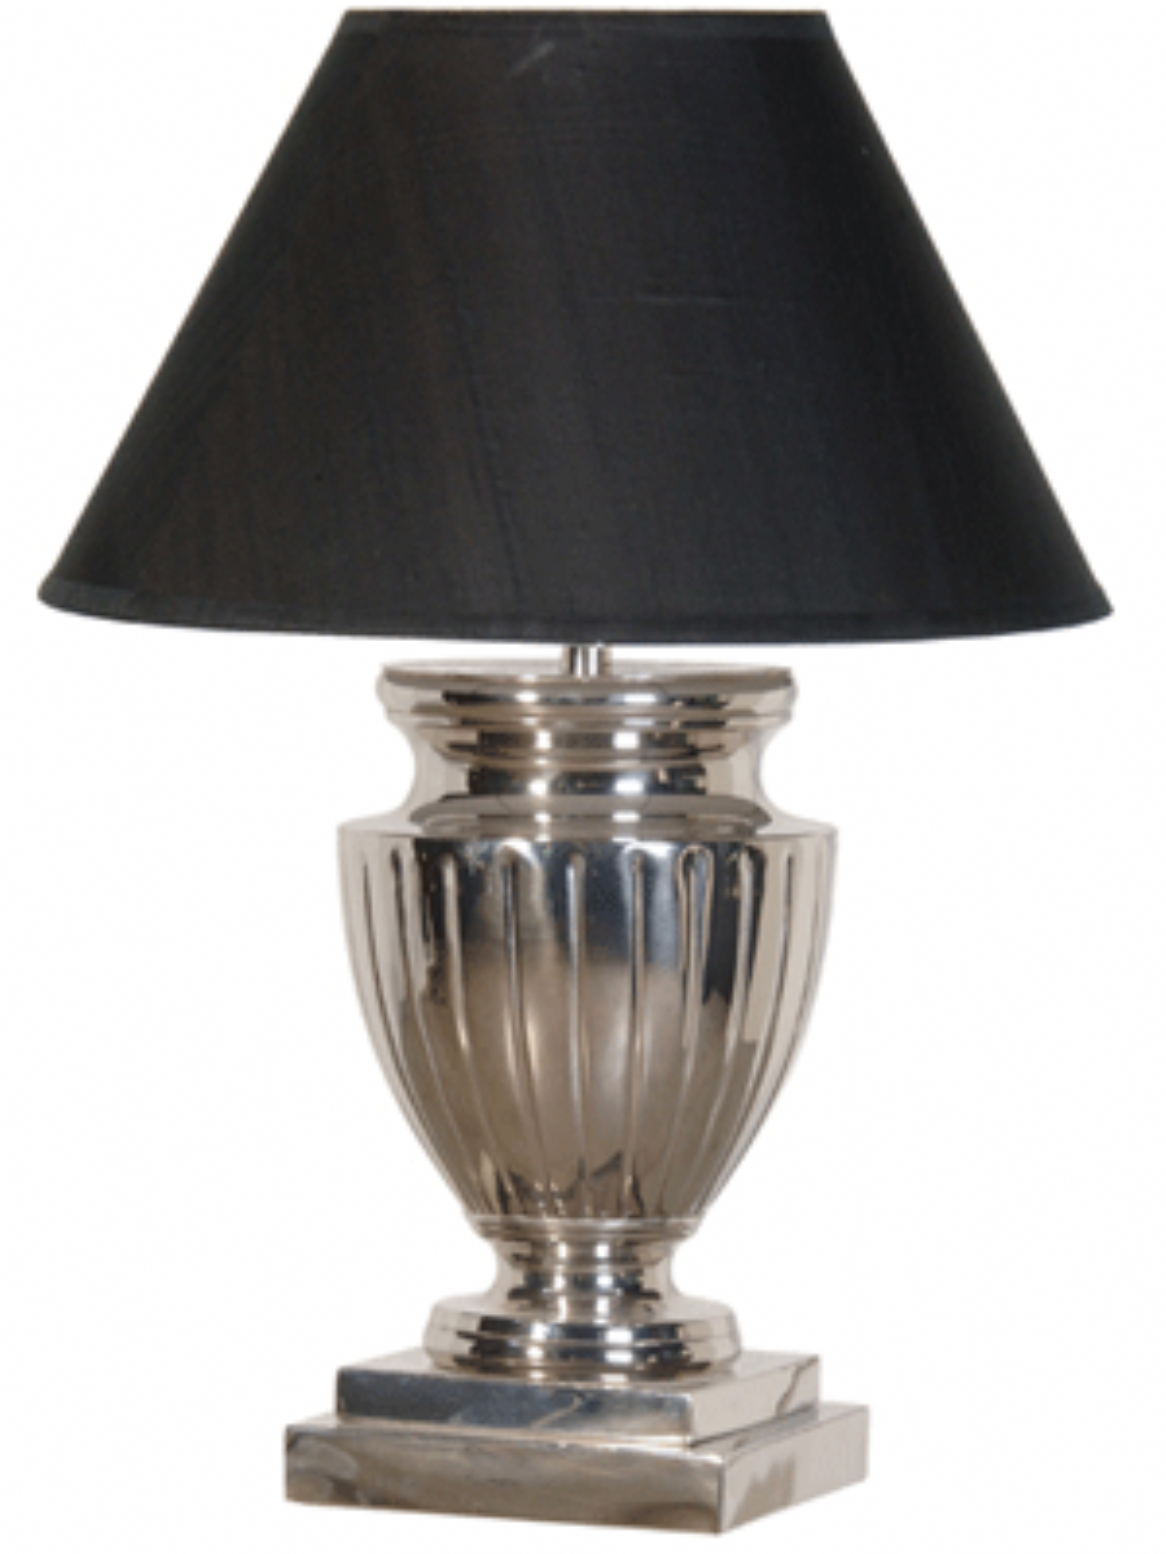 Chrome table lamps | Warisan Lighting:chrome table lamps photo - 6,Lighting